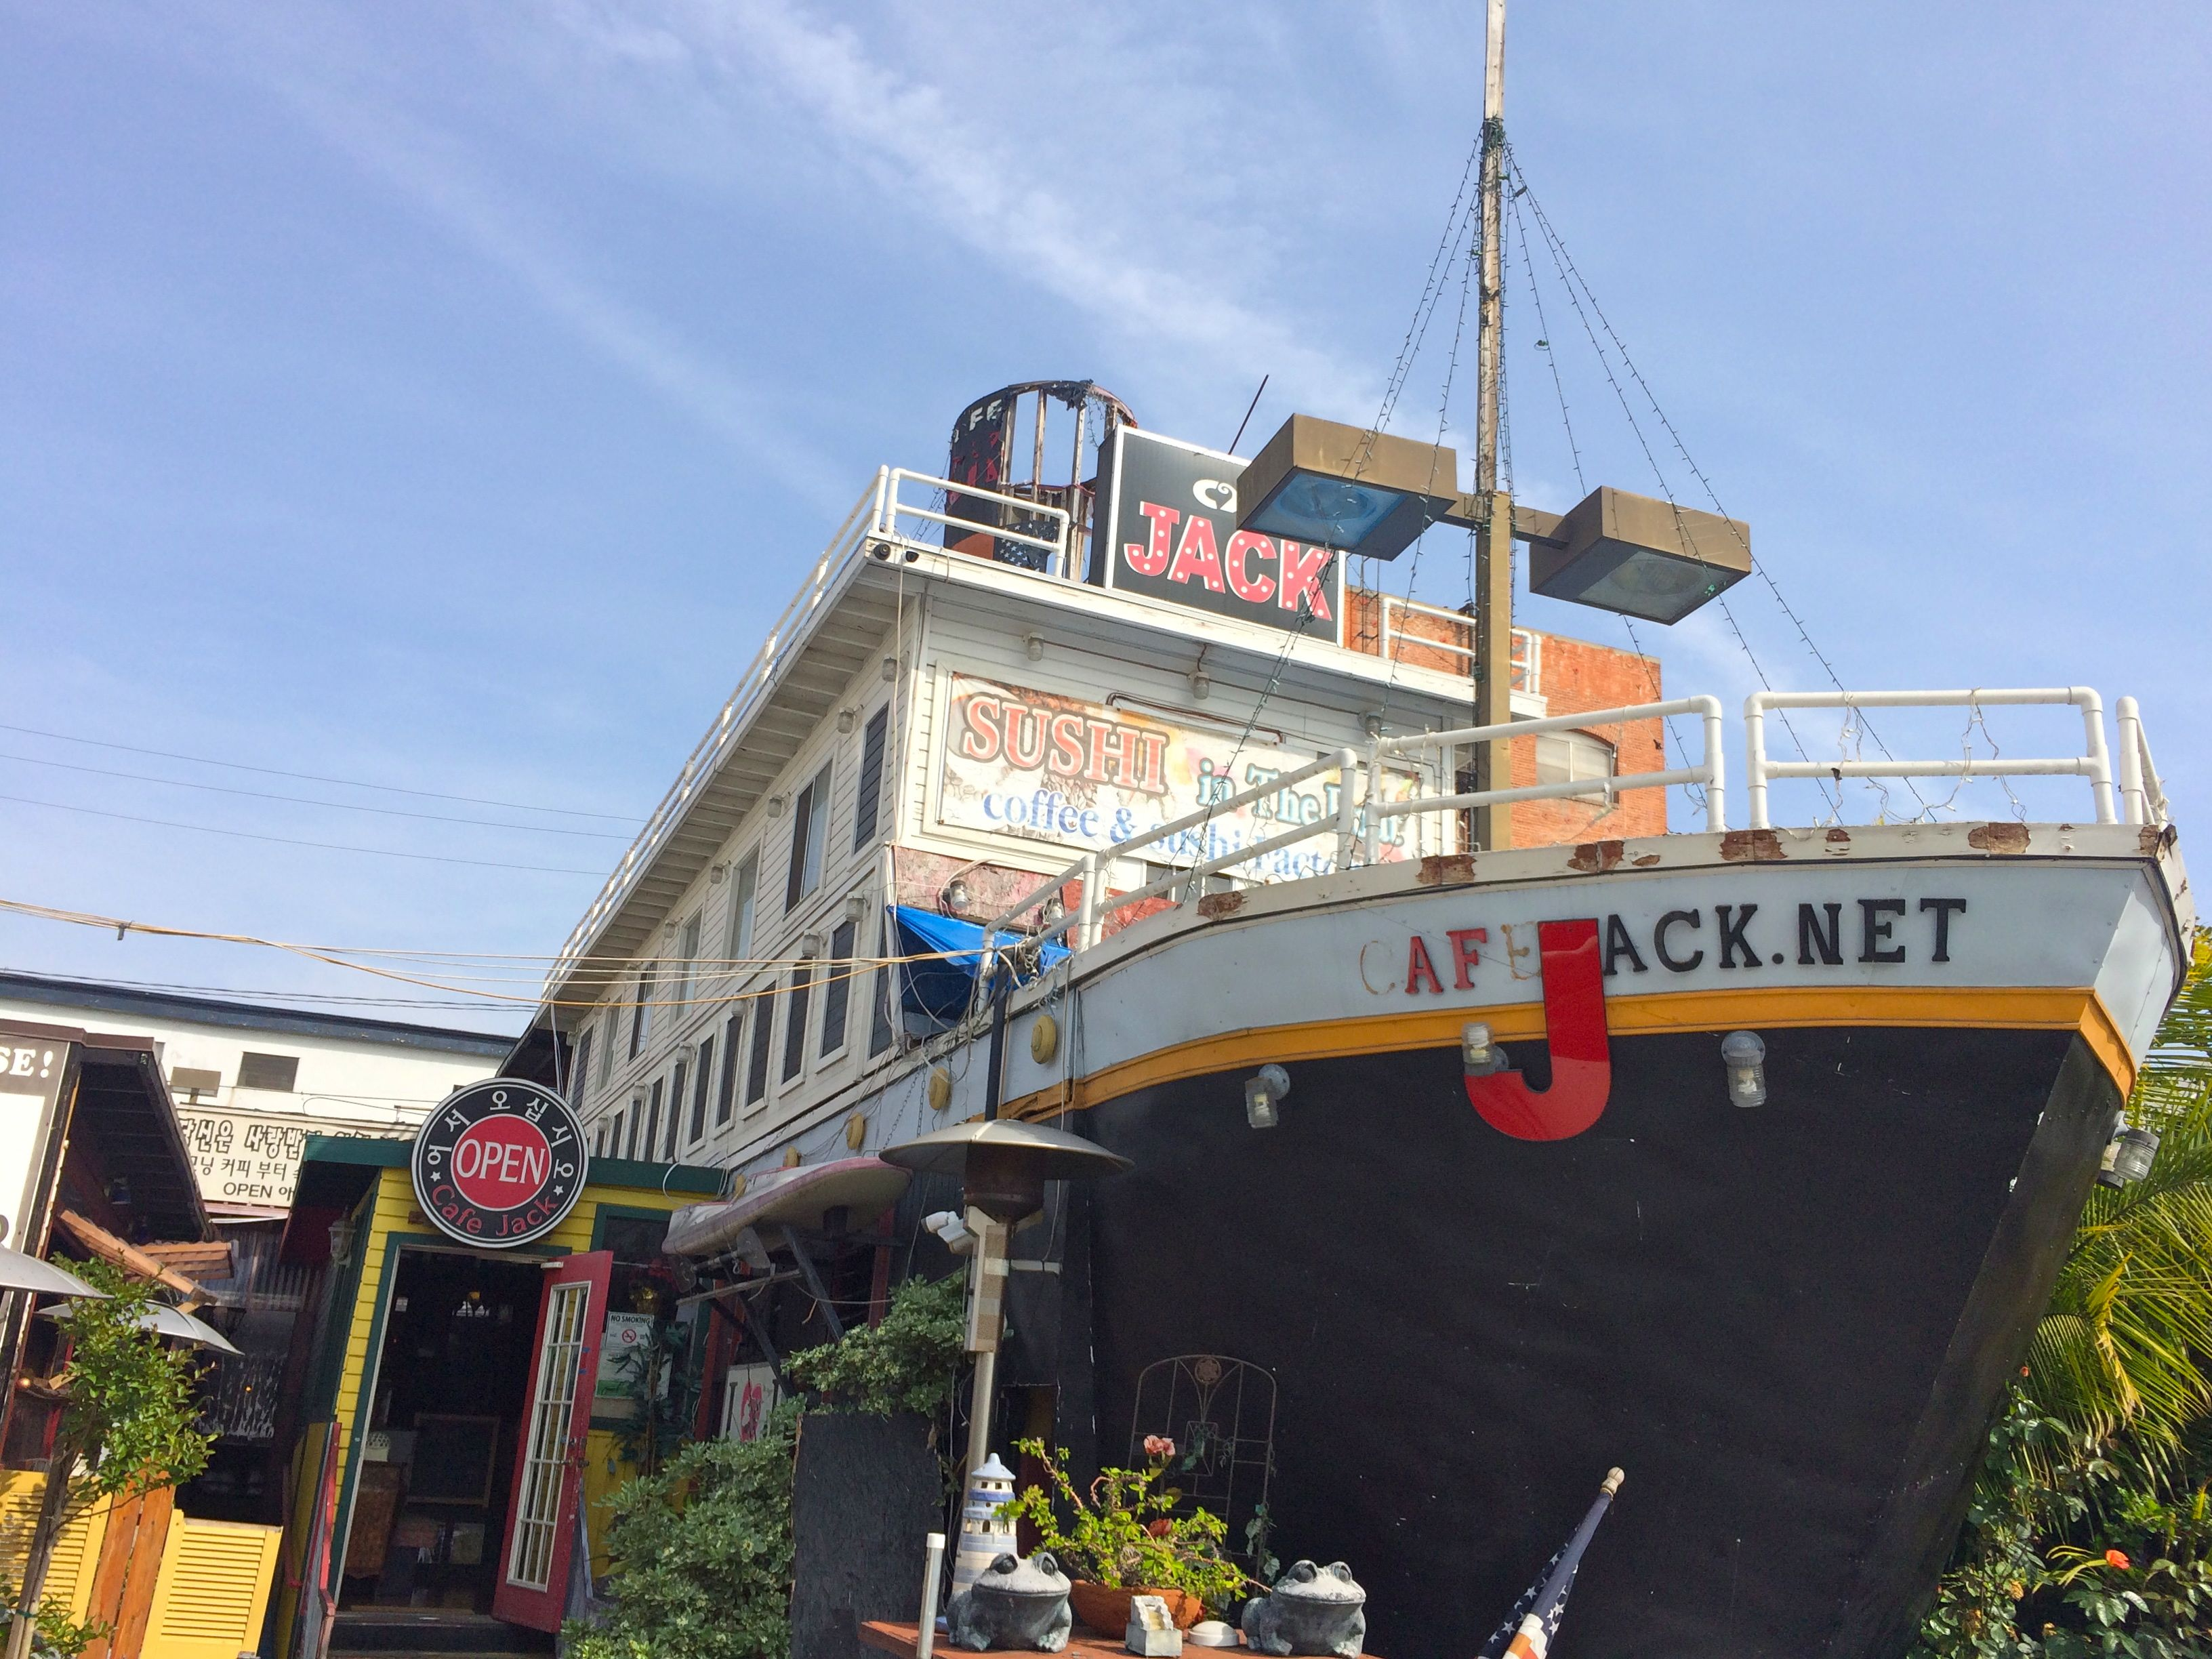 Sailing, Take Me Away... Cafe Jack in Koreatown (Photo by Nikki Kreuzer)